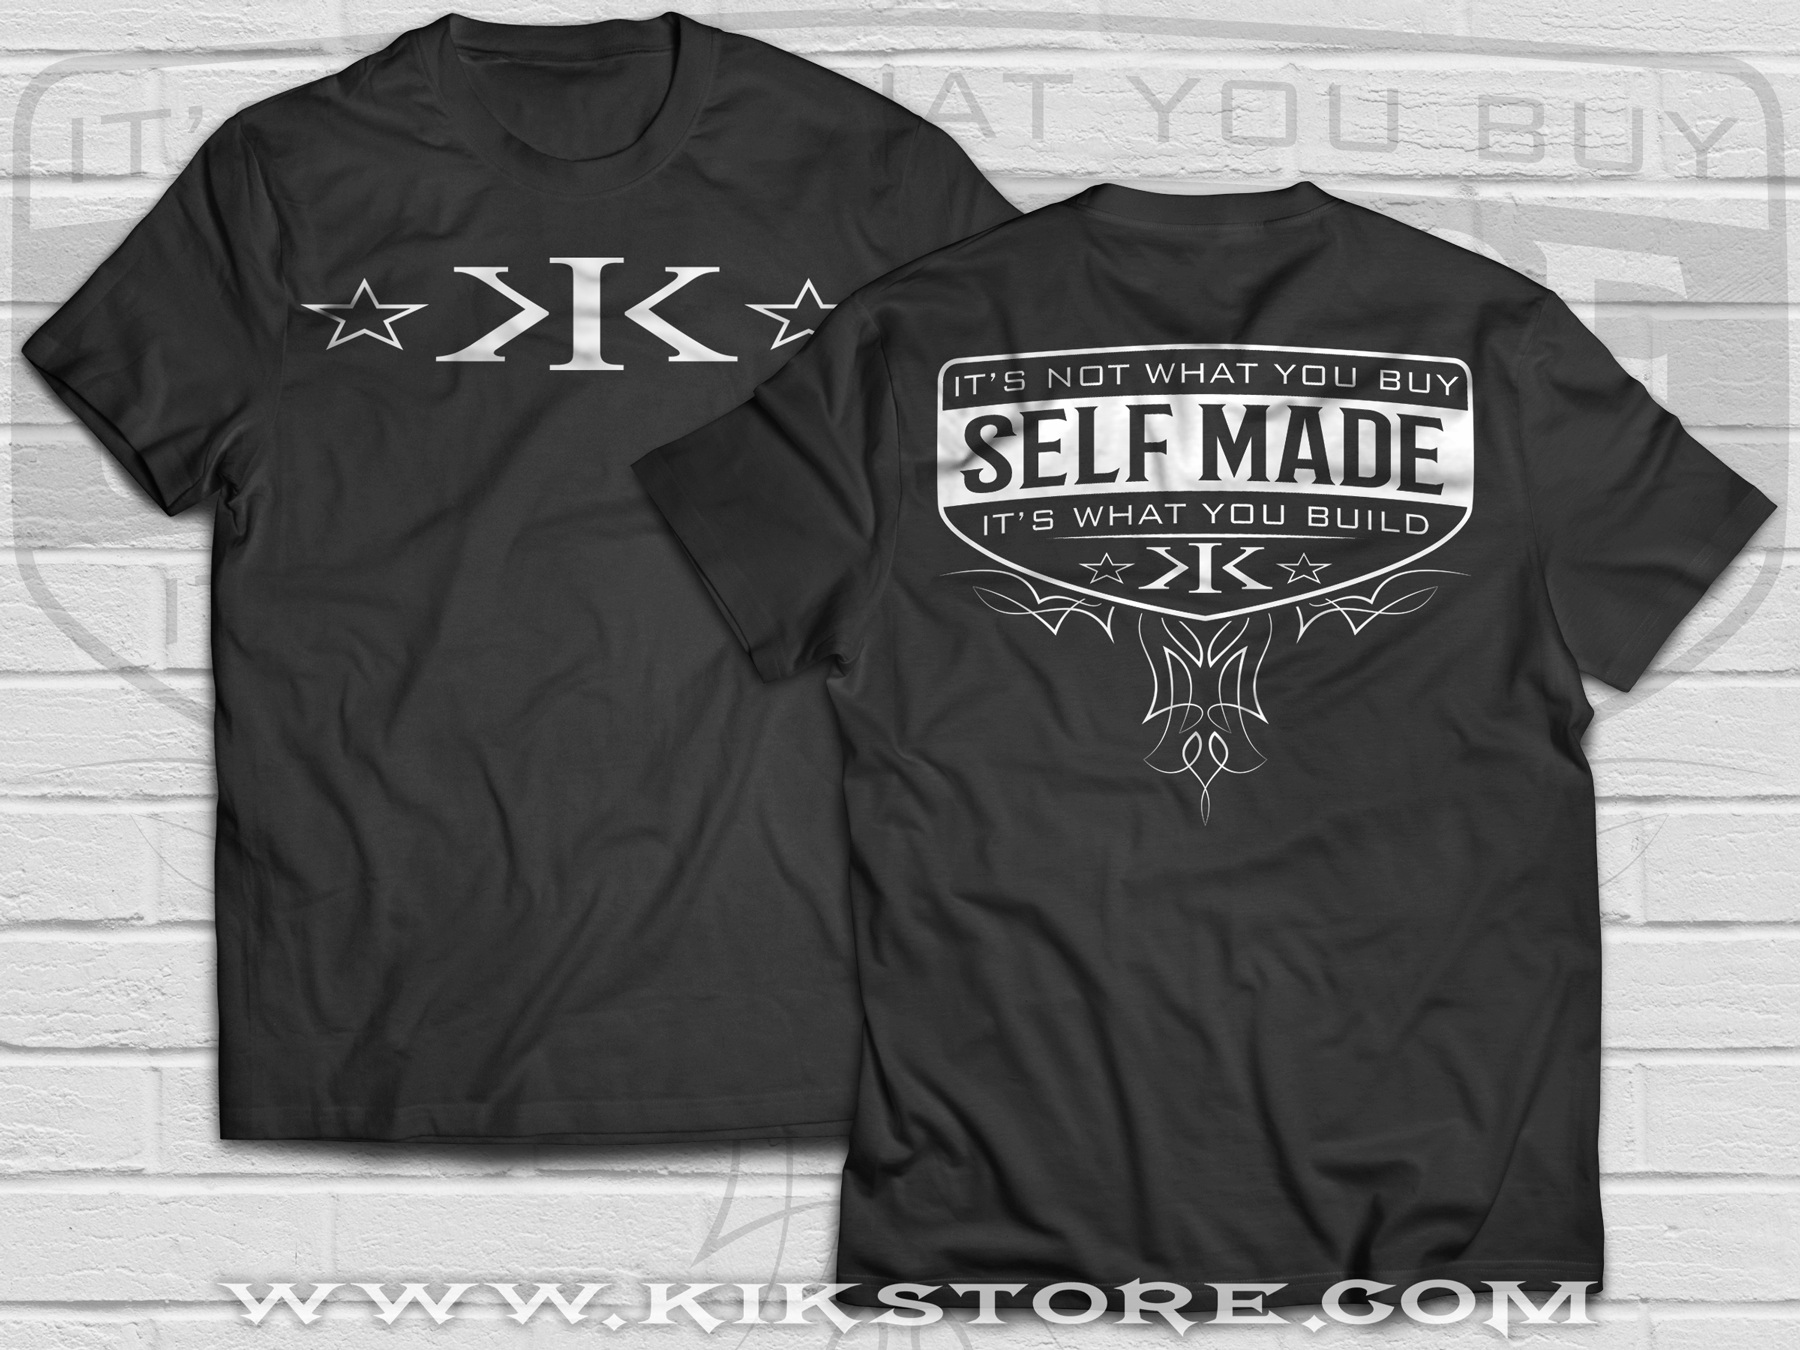 PRE ORDER ONLY! Self Made